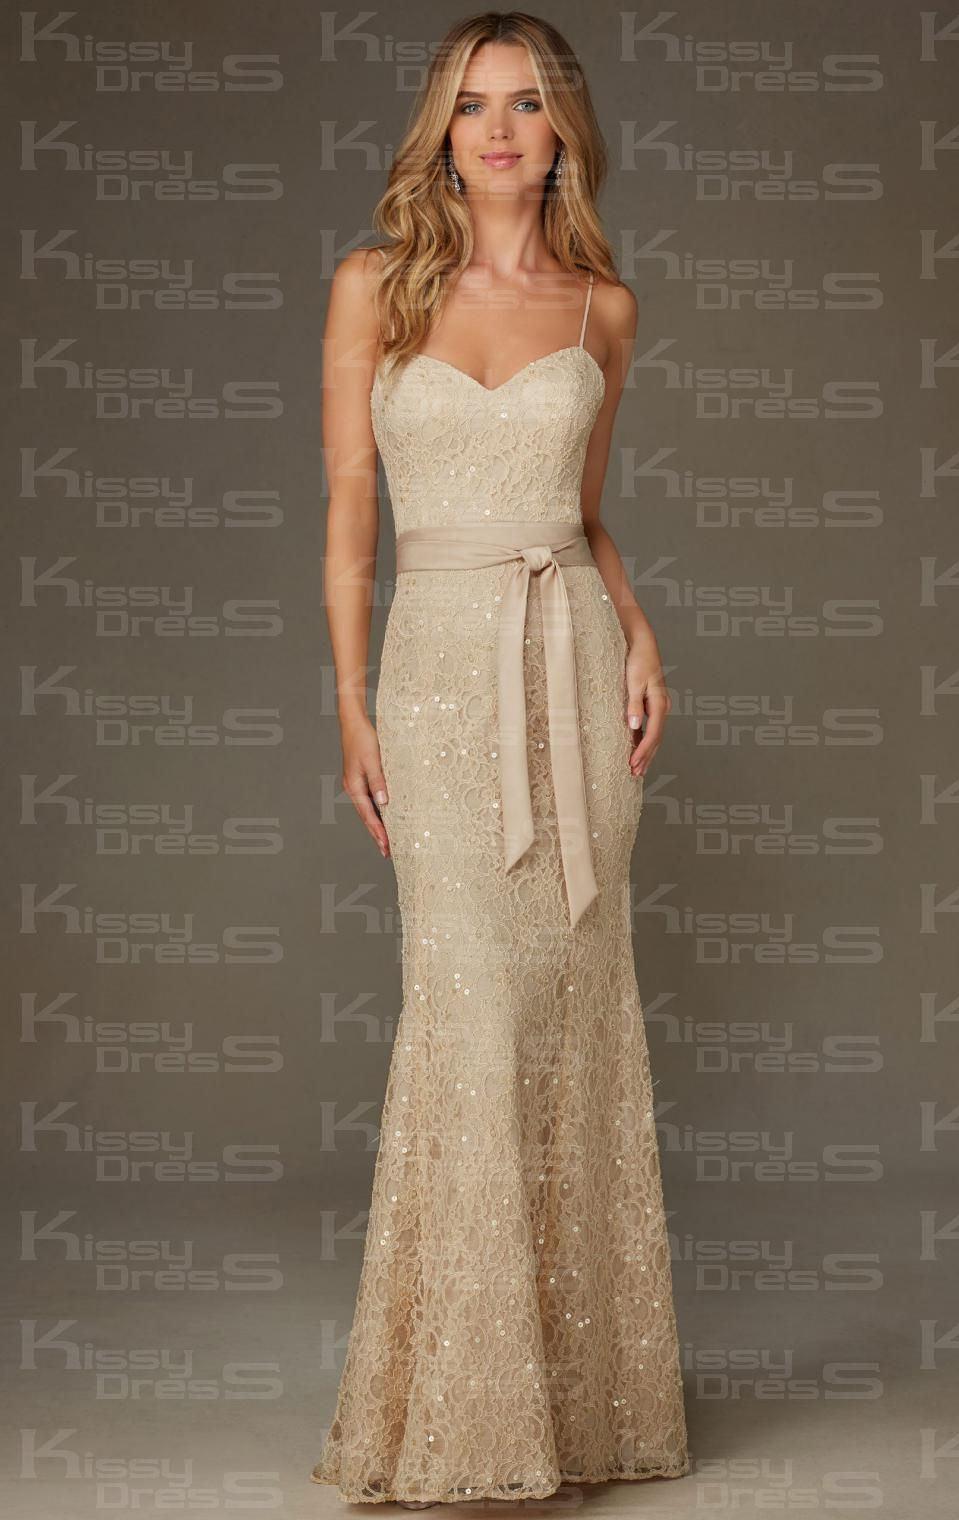 Kissybridesmaidssimple champagne long bridesmaid dress